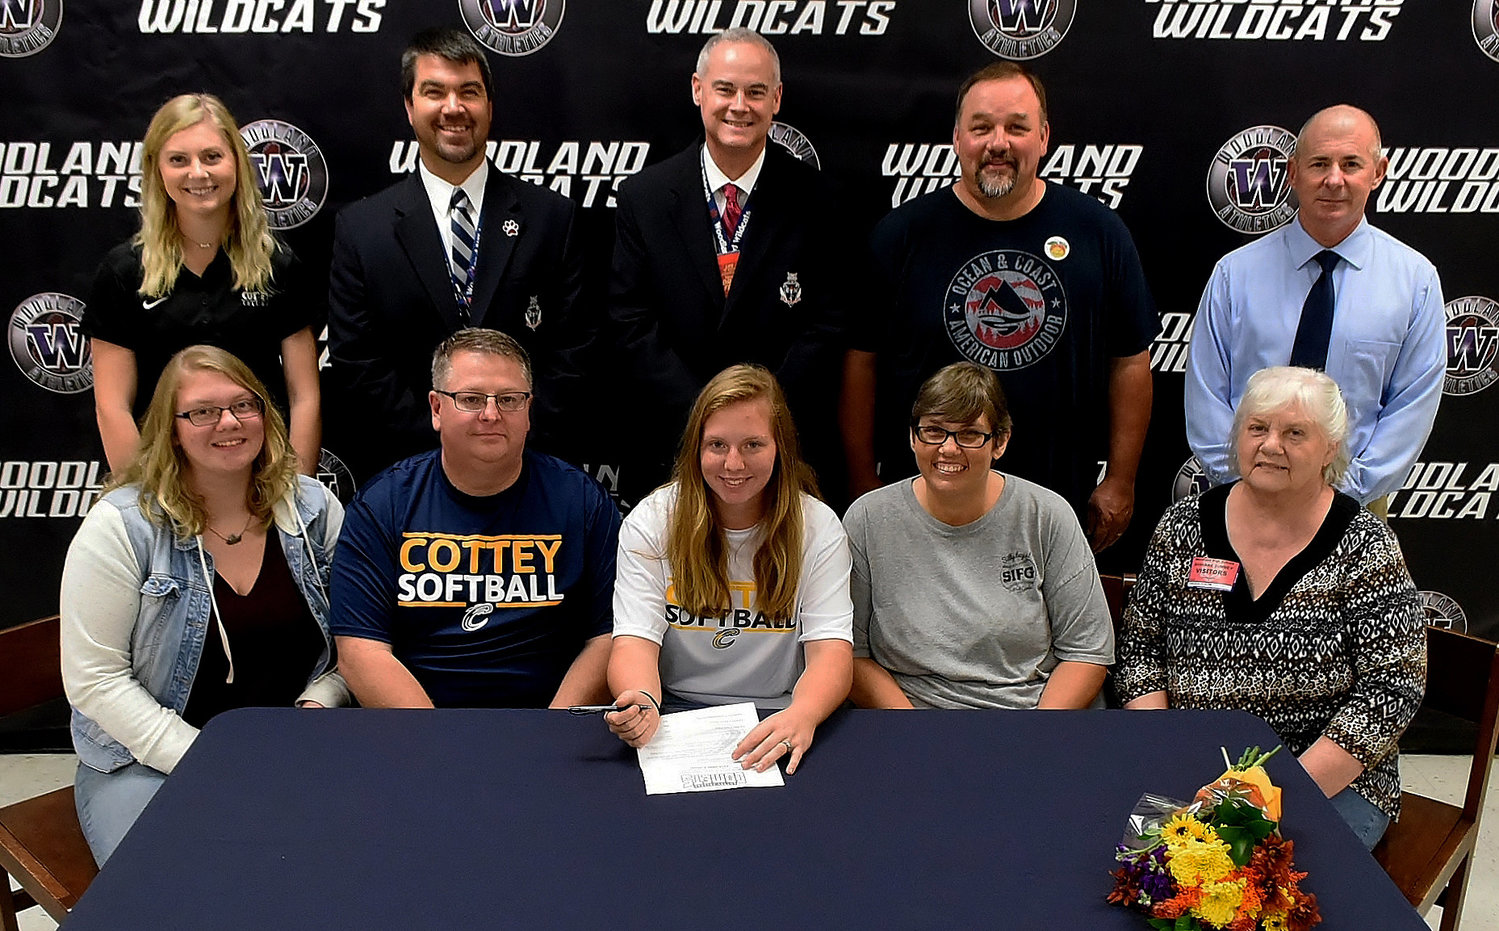 Woodland High senior Skylar Chappell signed Tuesday to play softball at Cottey College in Nevada, Missouri. On hand for the signing were, front row, from left: Sonja Chappell, sister; Eugene Chappell, father; Stacia Chappell, mother; and Barbara Summey, grandmother; back row, from left: Christian Novak, Cottey College assistant softball coach; John Howard, WHS athletic director; Wes Dickey, WHS principal; Brent Higdon; and Colman Roberts, WHS softball coach.